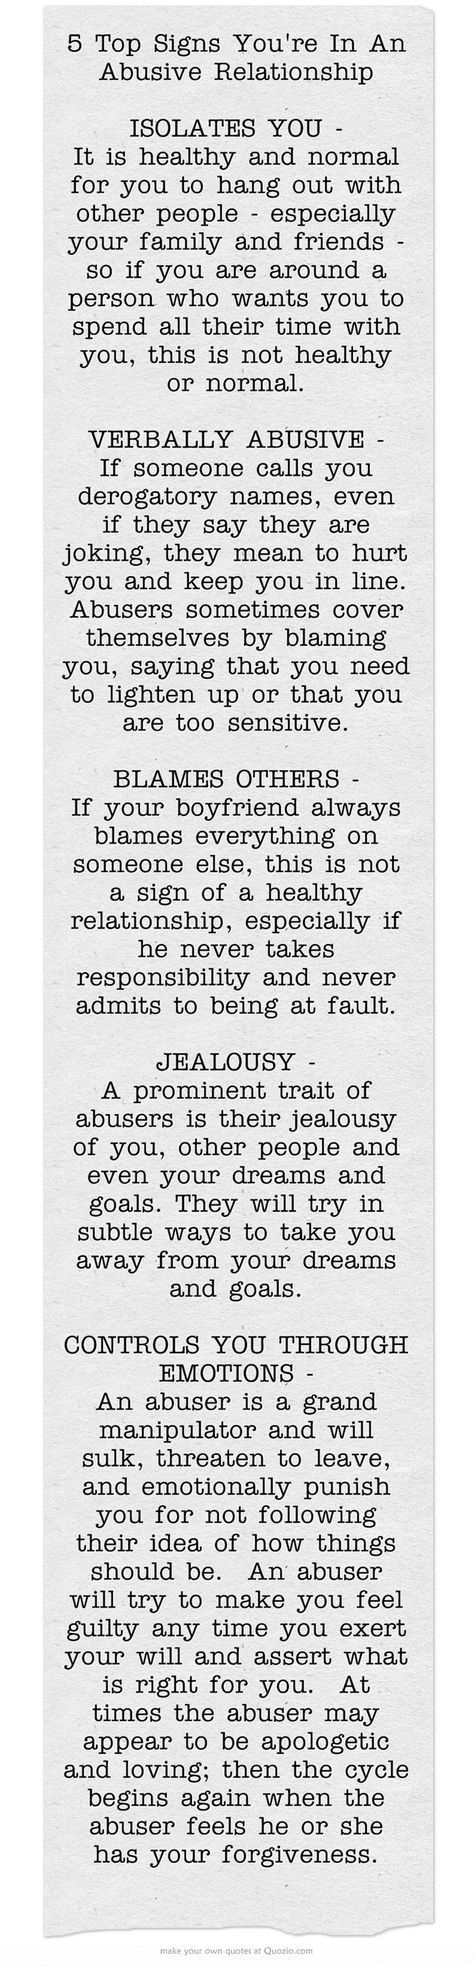 5 Top Signs You're In An Abusive Relationship - It gets worse, not better. OPEN YOUR EYES!